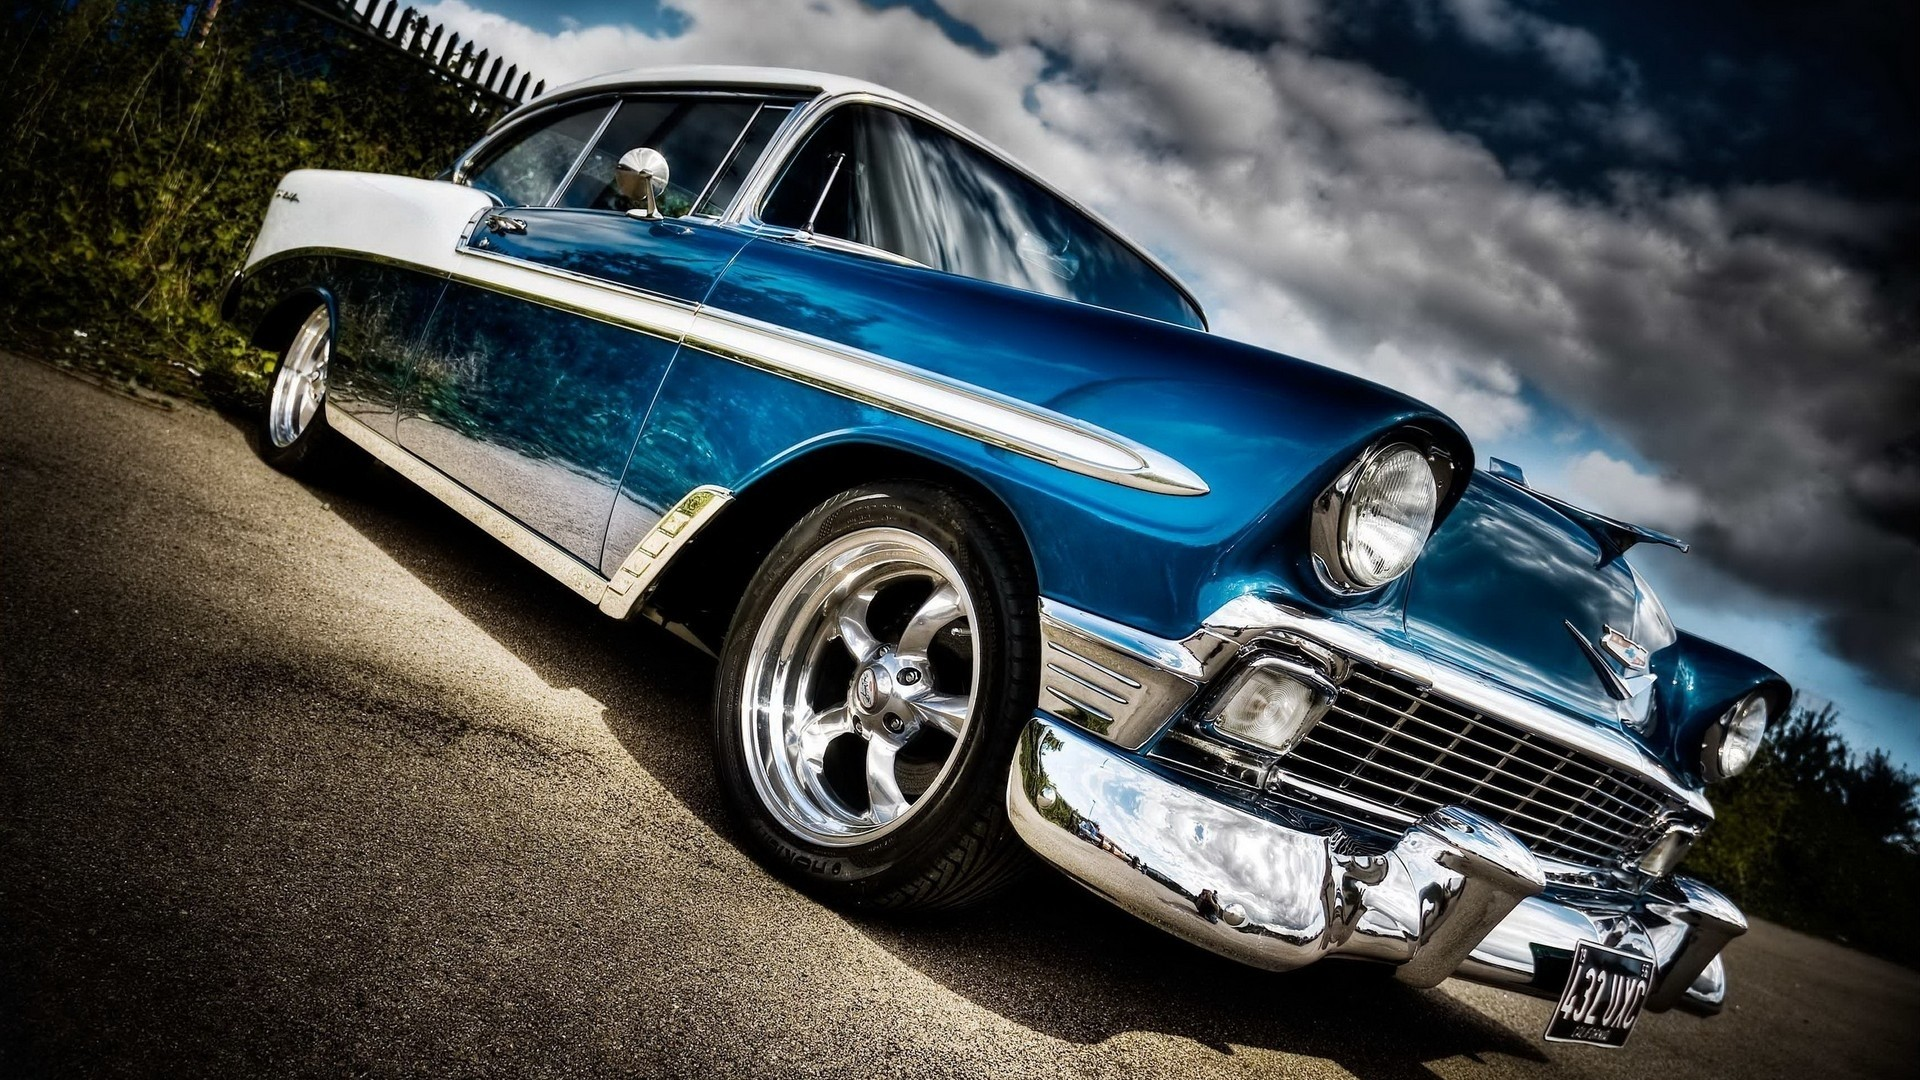 Awesome Chevy Wallpaper